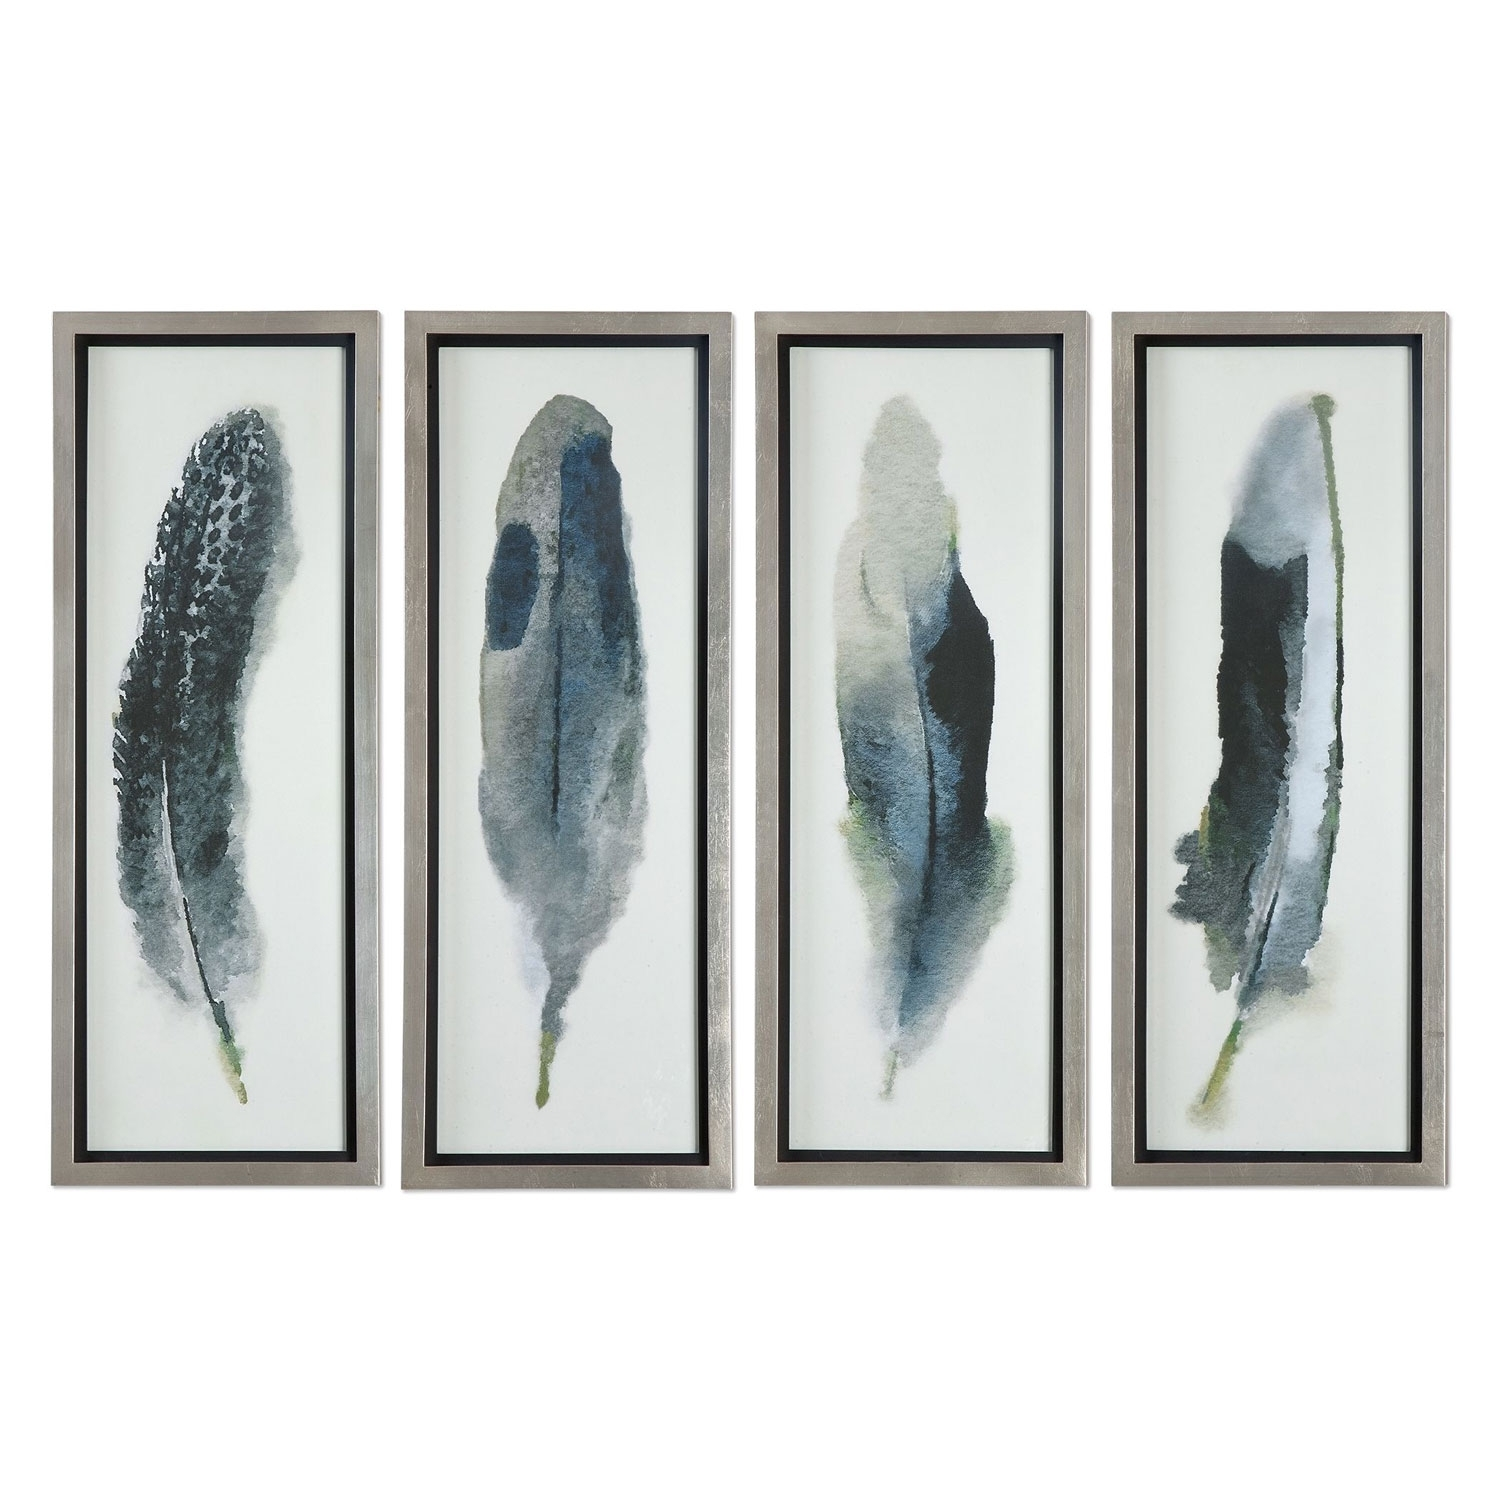 Uttermost Feathered Beautygrace Feyock: 14 X 38 Inch Wall Art In Most Popular Wall Art Sets (Gallery 4 of 15)